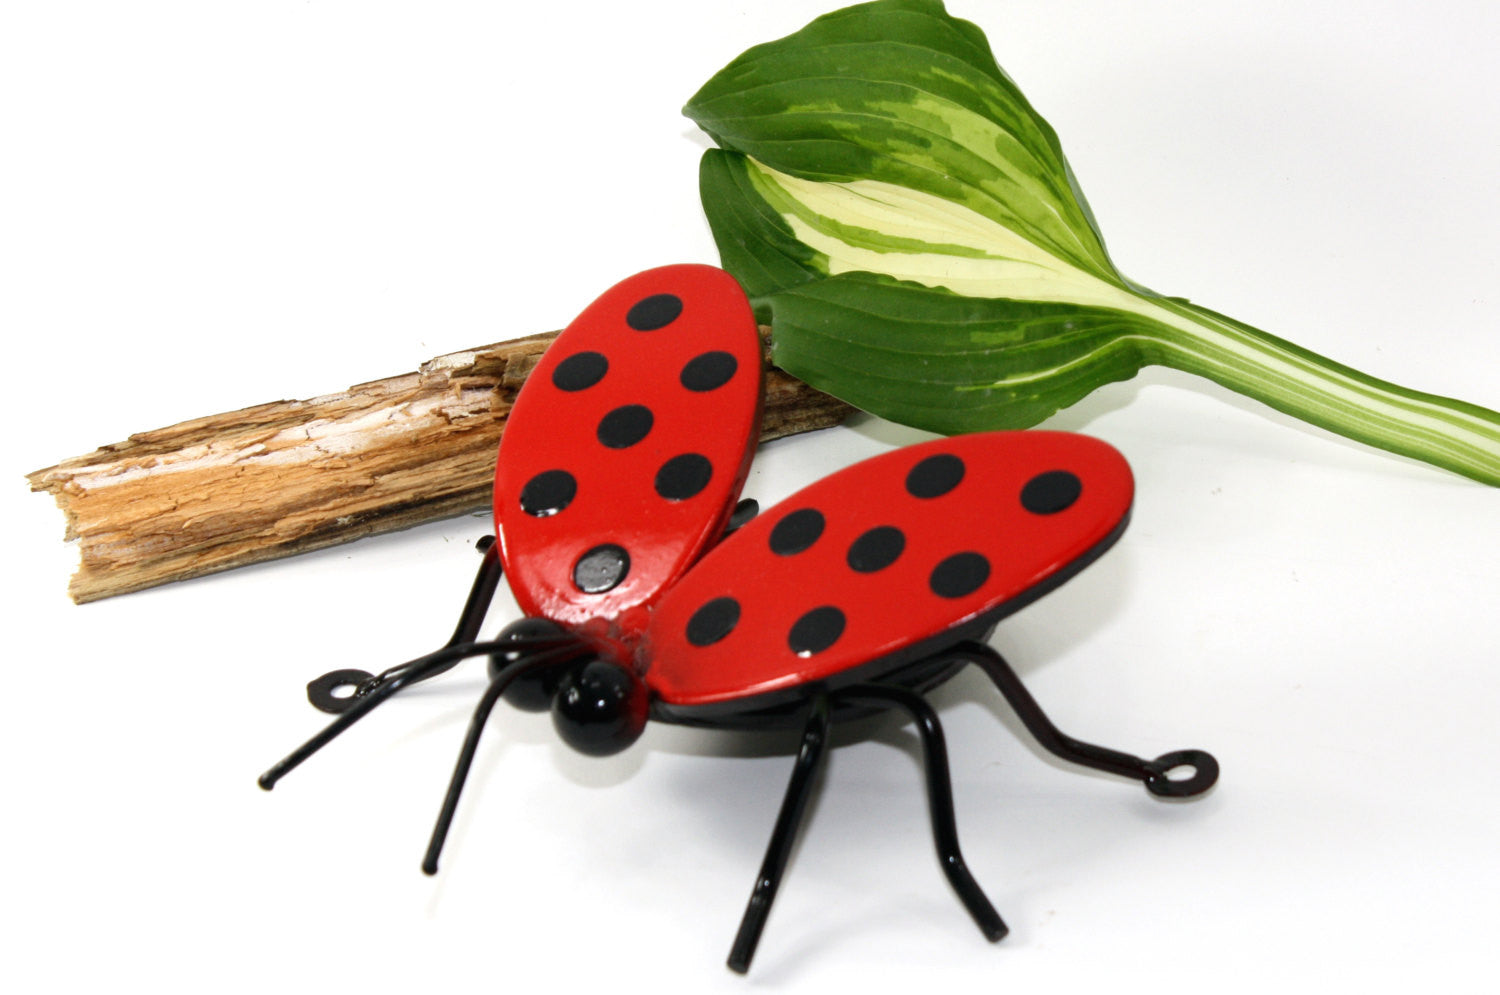 Ladybug Family: Wall-mounted Metal Art Lady Bug Family Of 4 Ladybugs